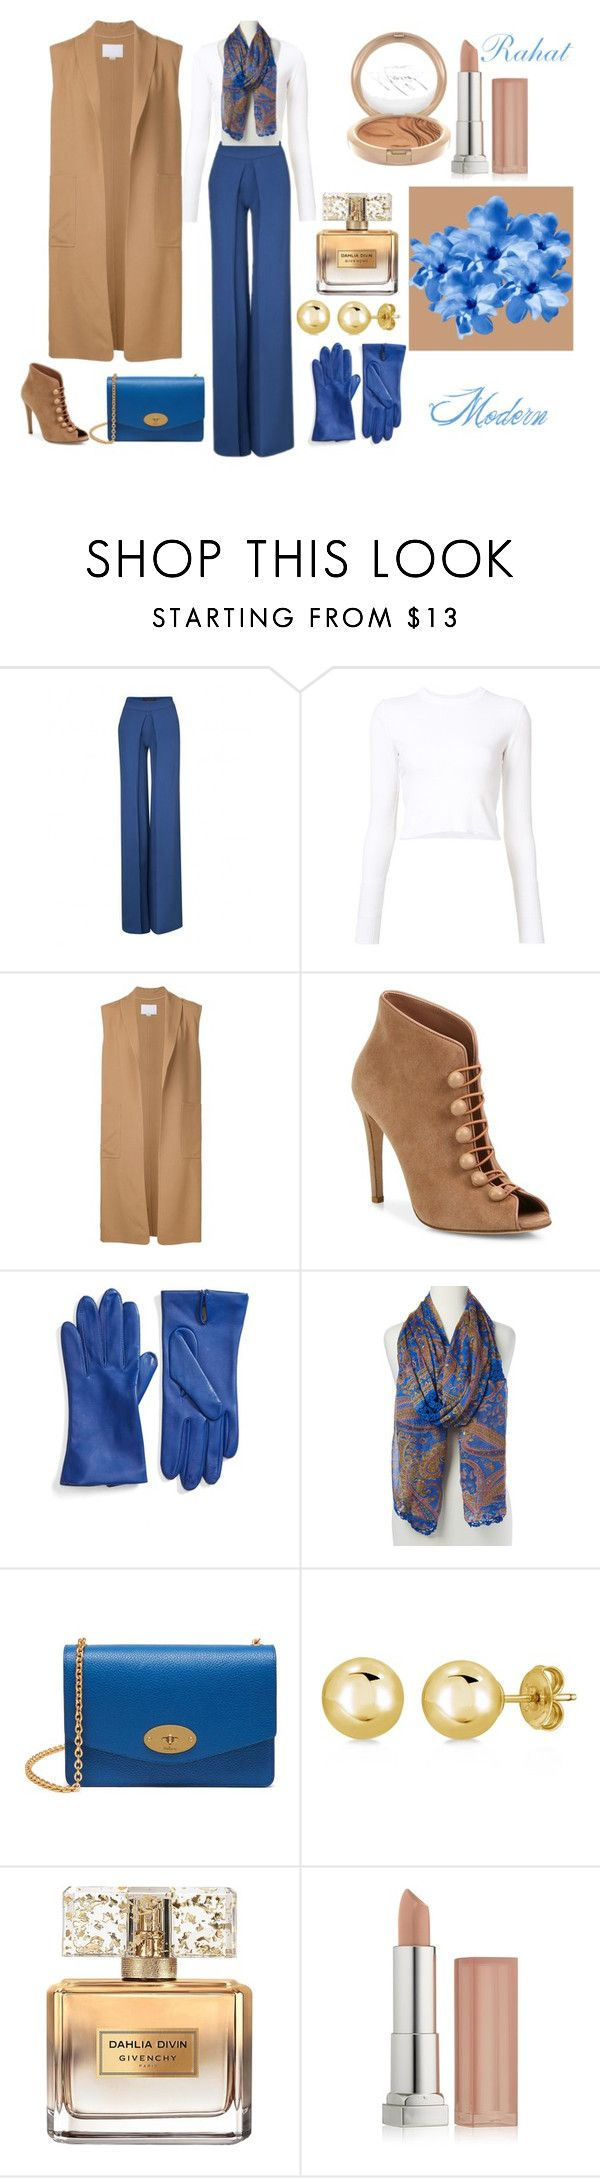 """""""Klasik&Şık"""" by terspabuclar on Polyvore featuring moda, Proenza Schouler, Alexander Wang, Gianvito Rossi, Fownes Brothers, Raj Imports, Mulberry, Mariah Carey, BERRICLE ve Givenchy"""